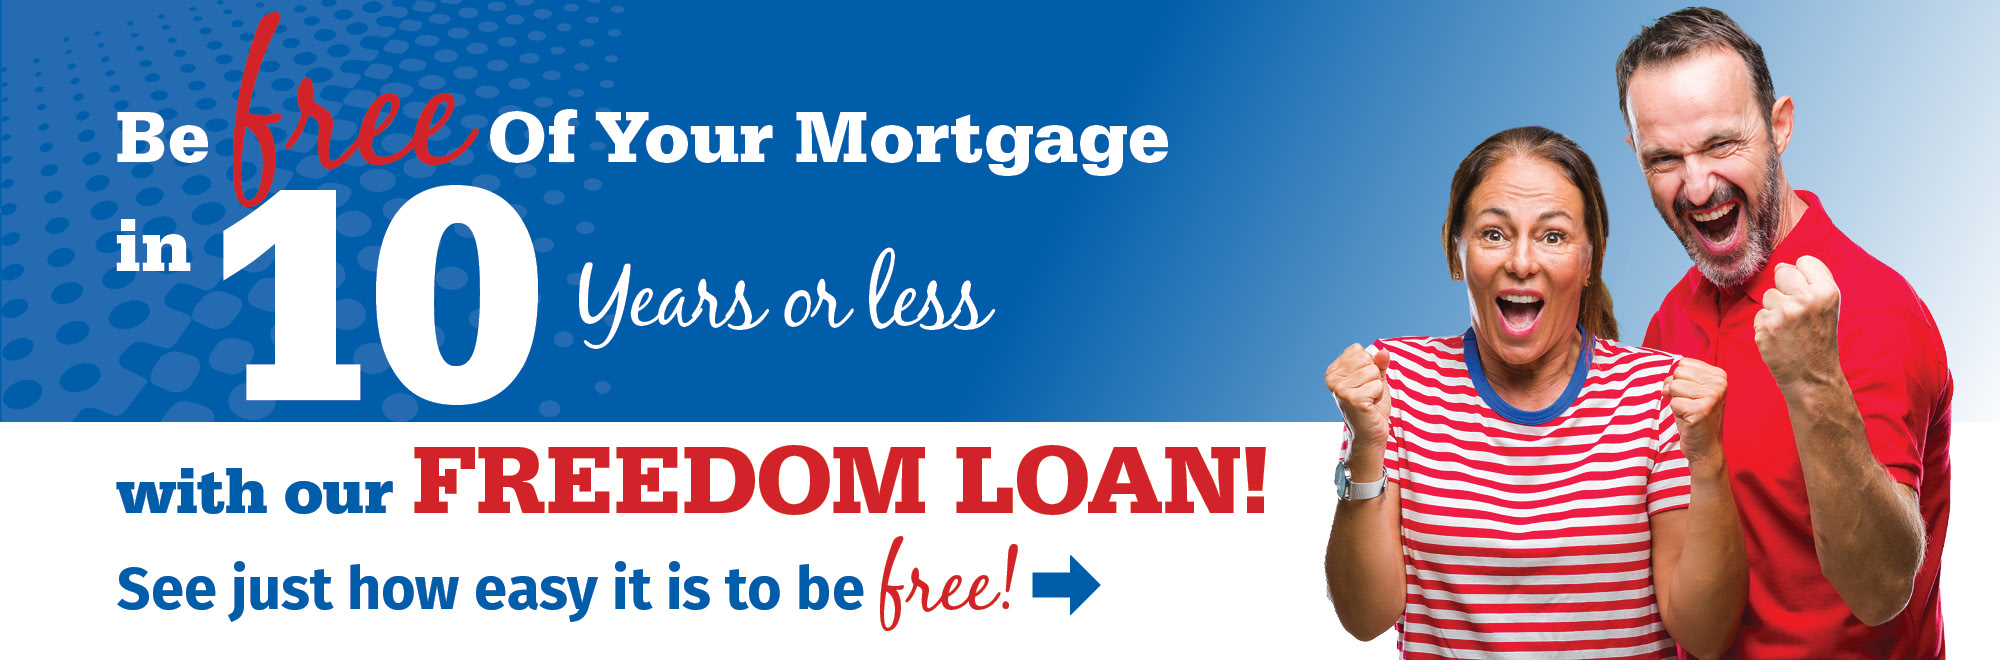 Be free of your mortgage with our 10-year freedom loan!